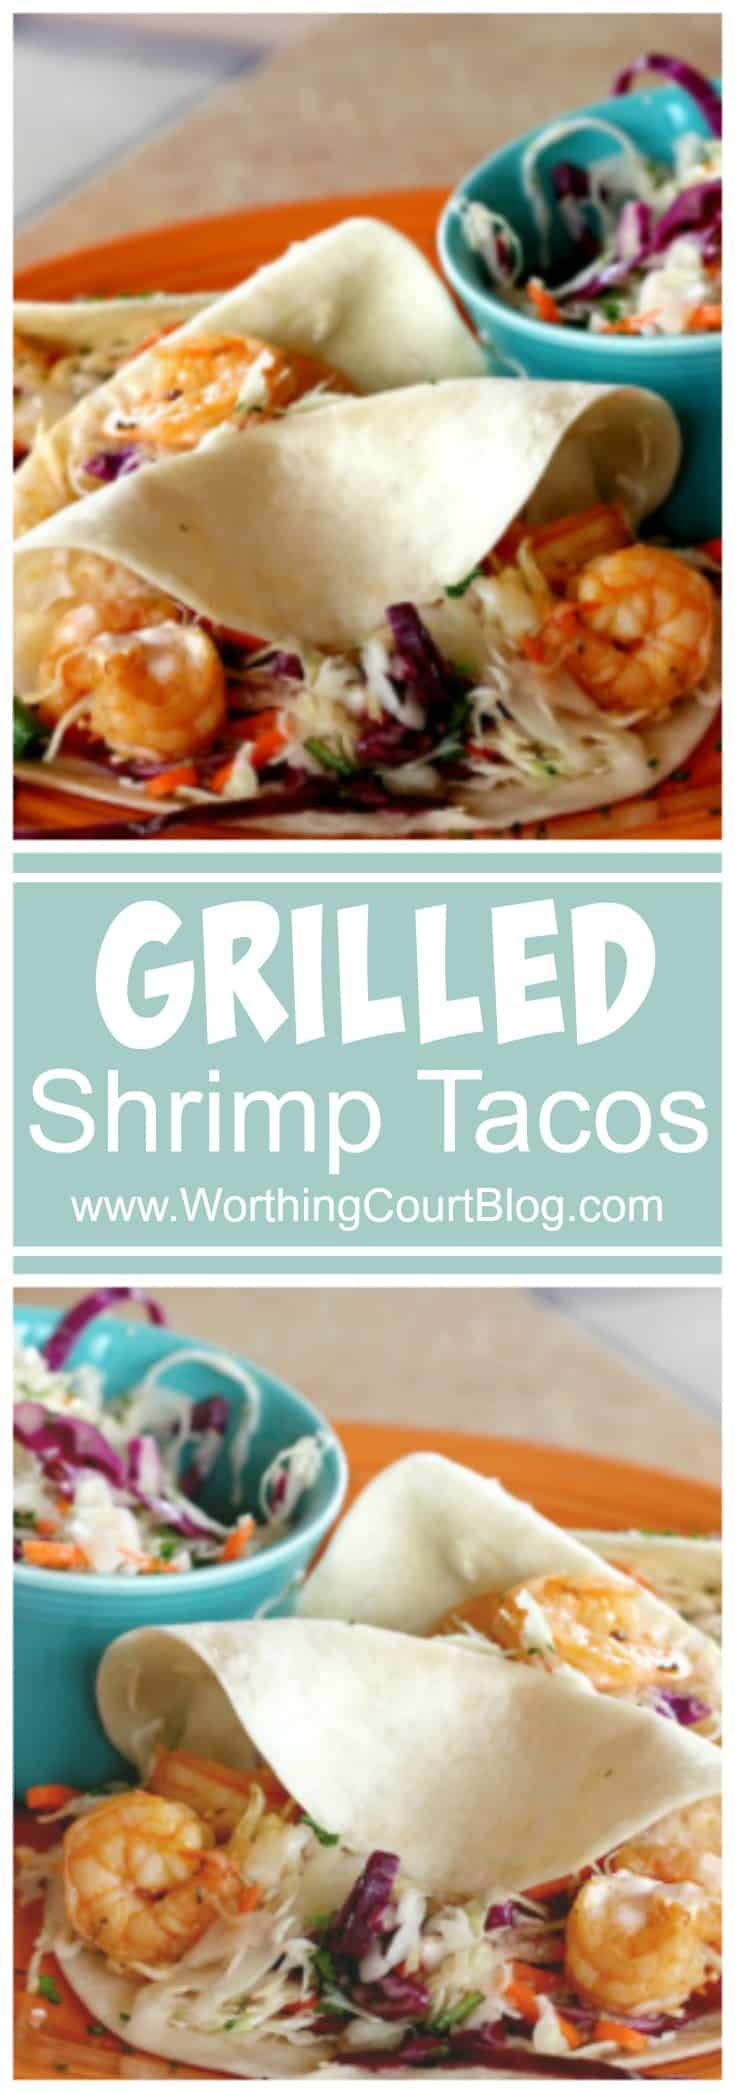 Grilled Shrimp Tacos by Worthing Court